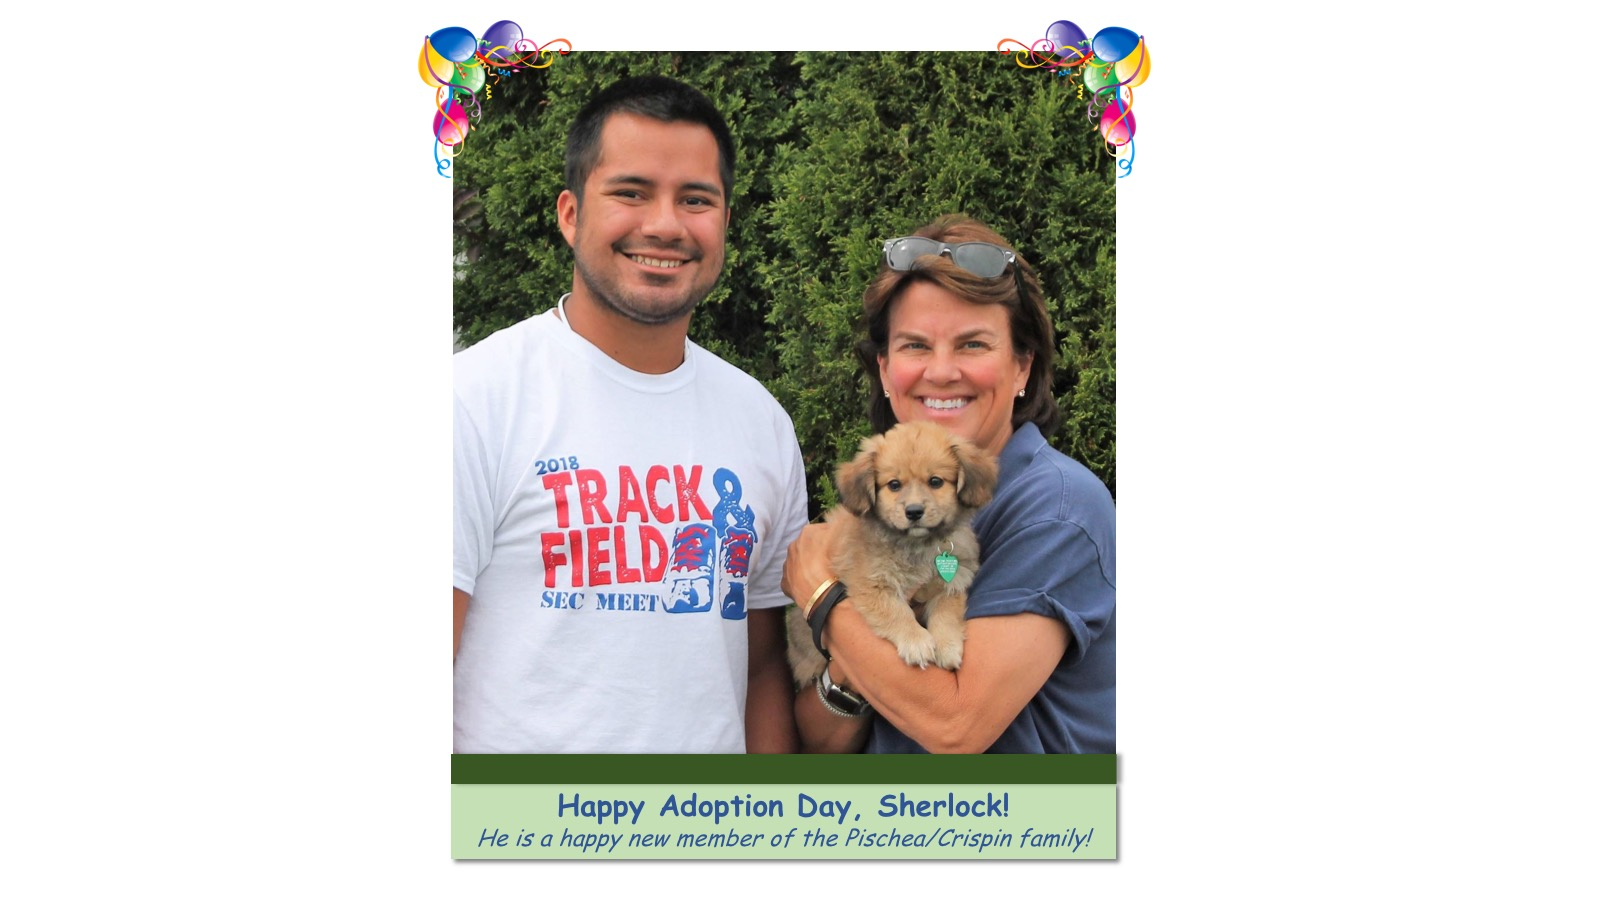 Sherlock_Adoption_Photo_2018.jpg